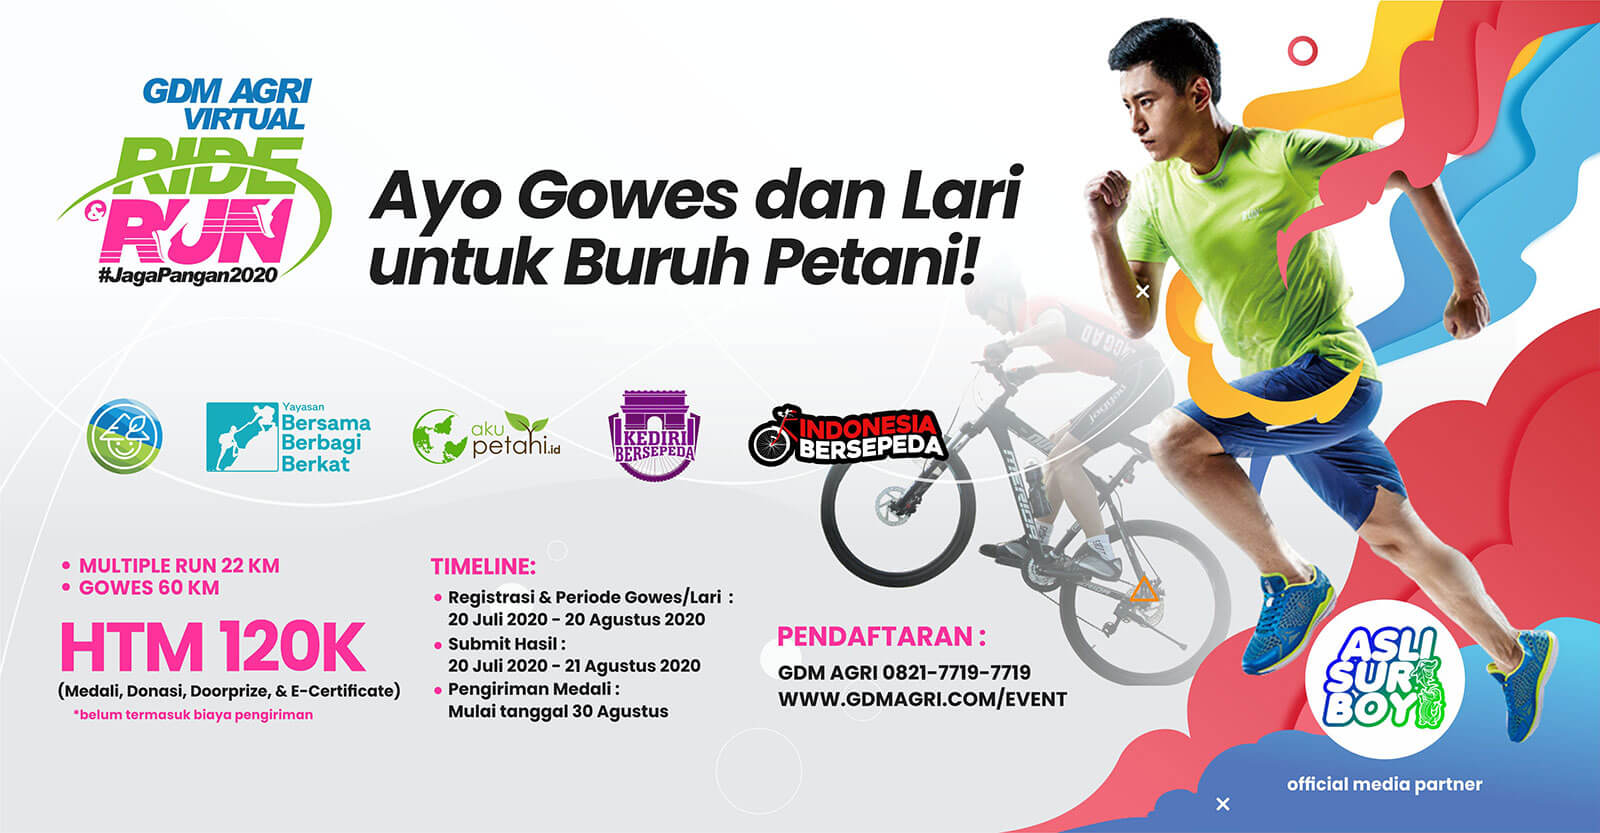 event gdm agri virtual ride run